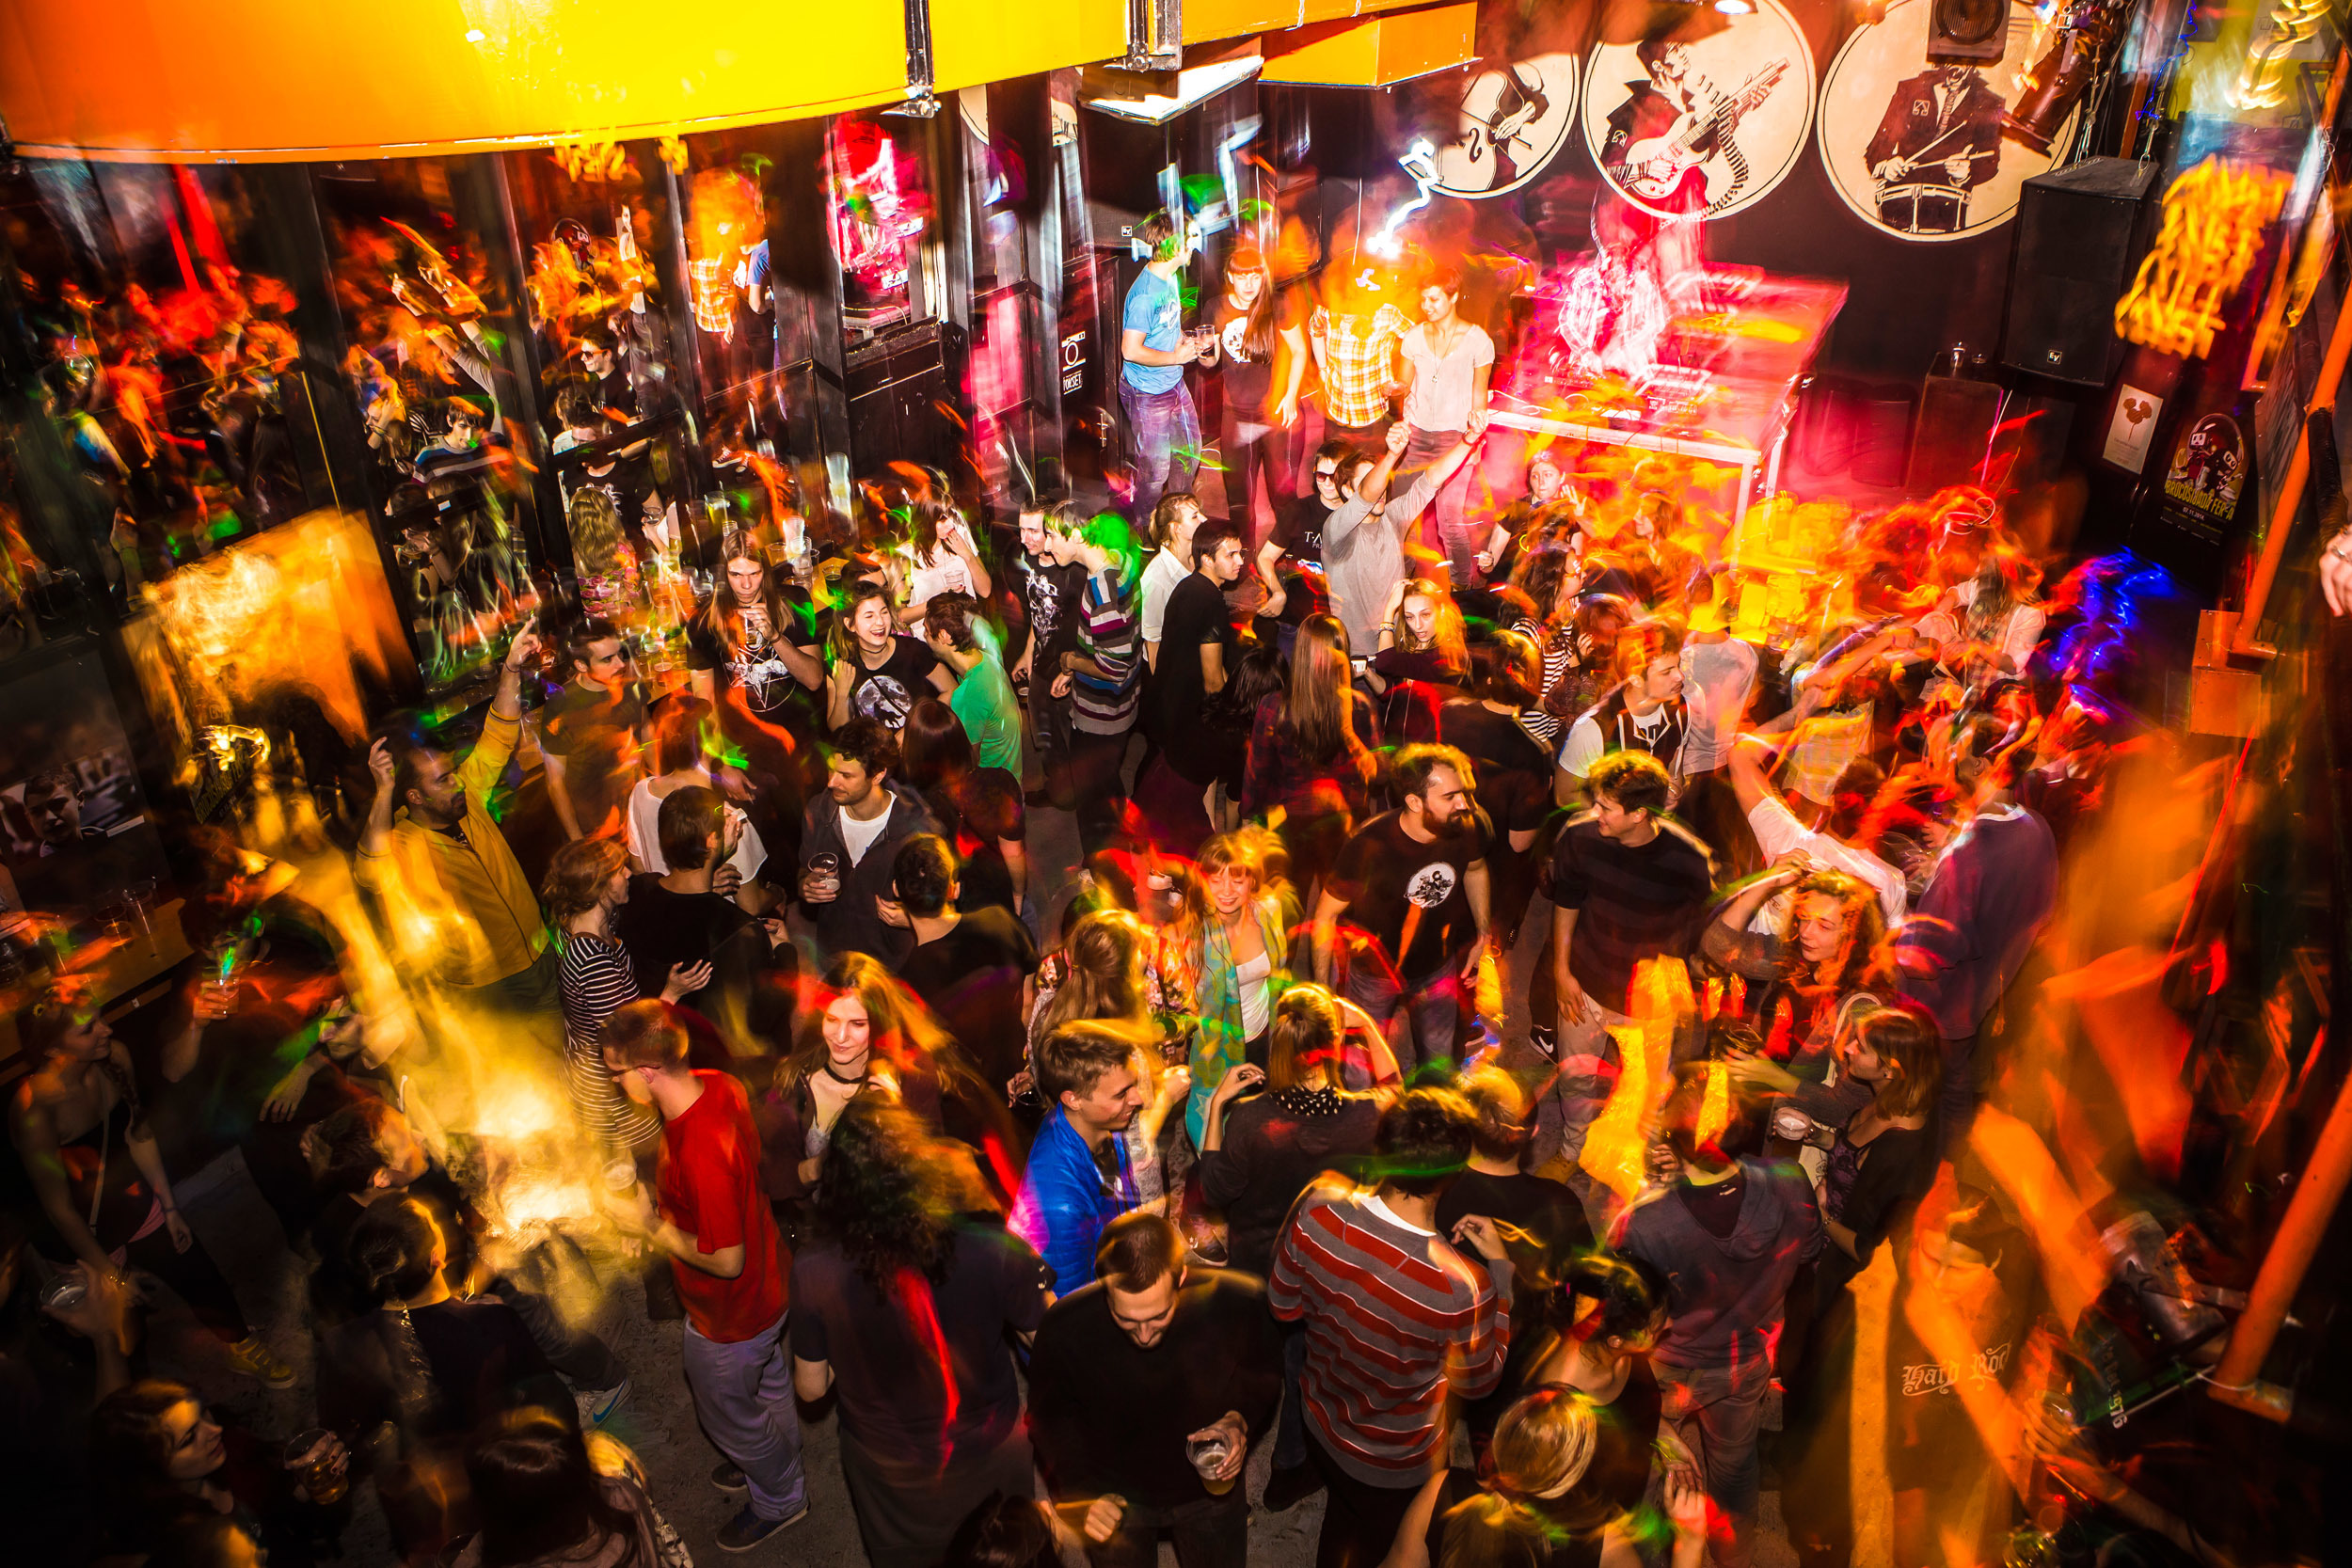 Zagreb nightlife guide